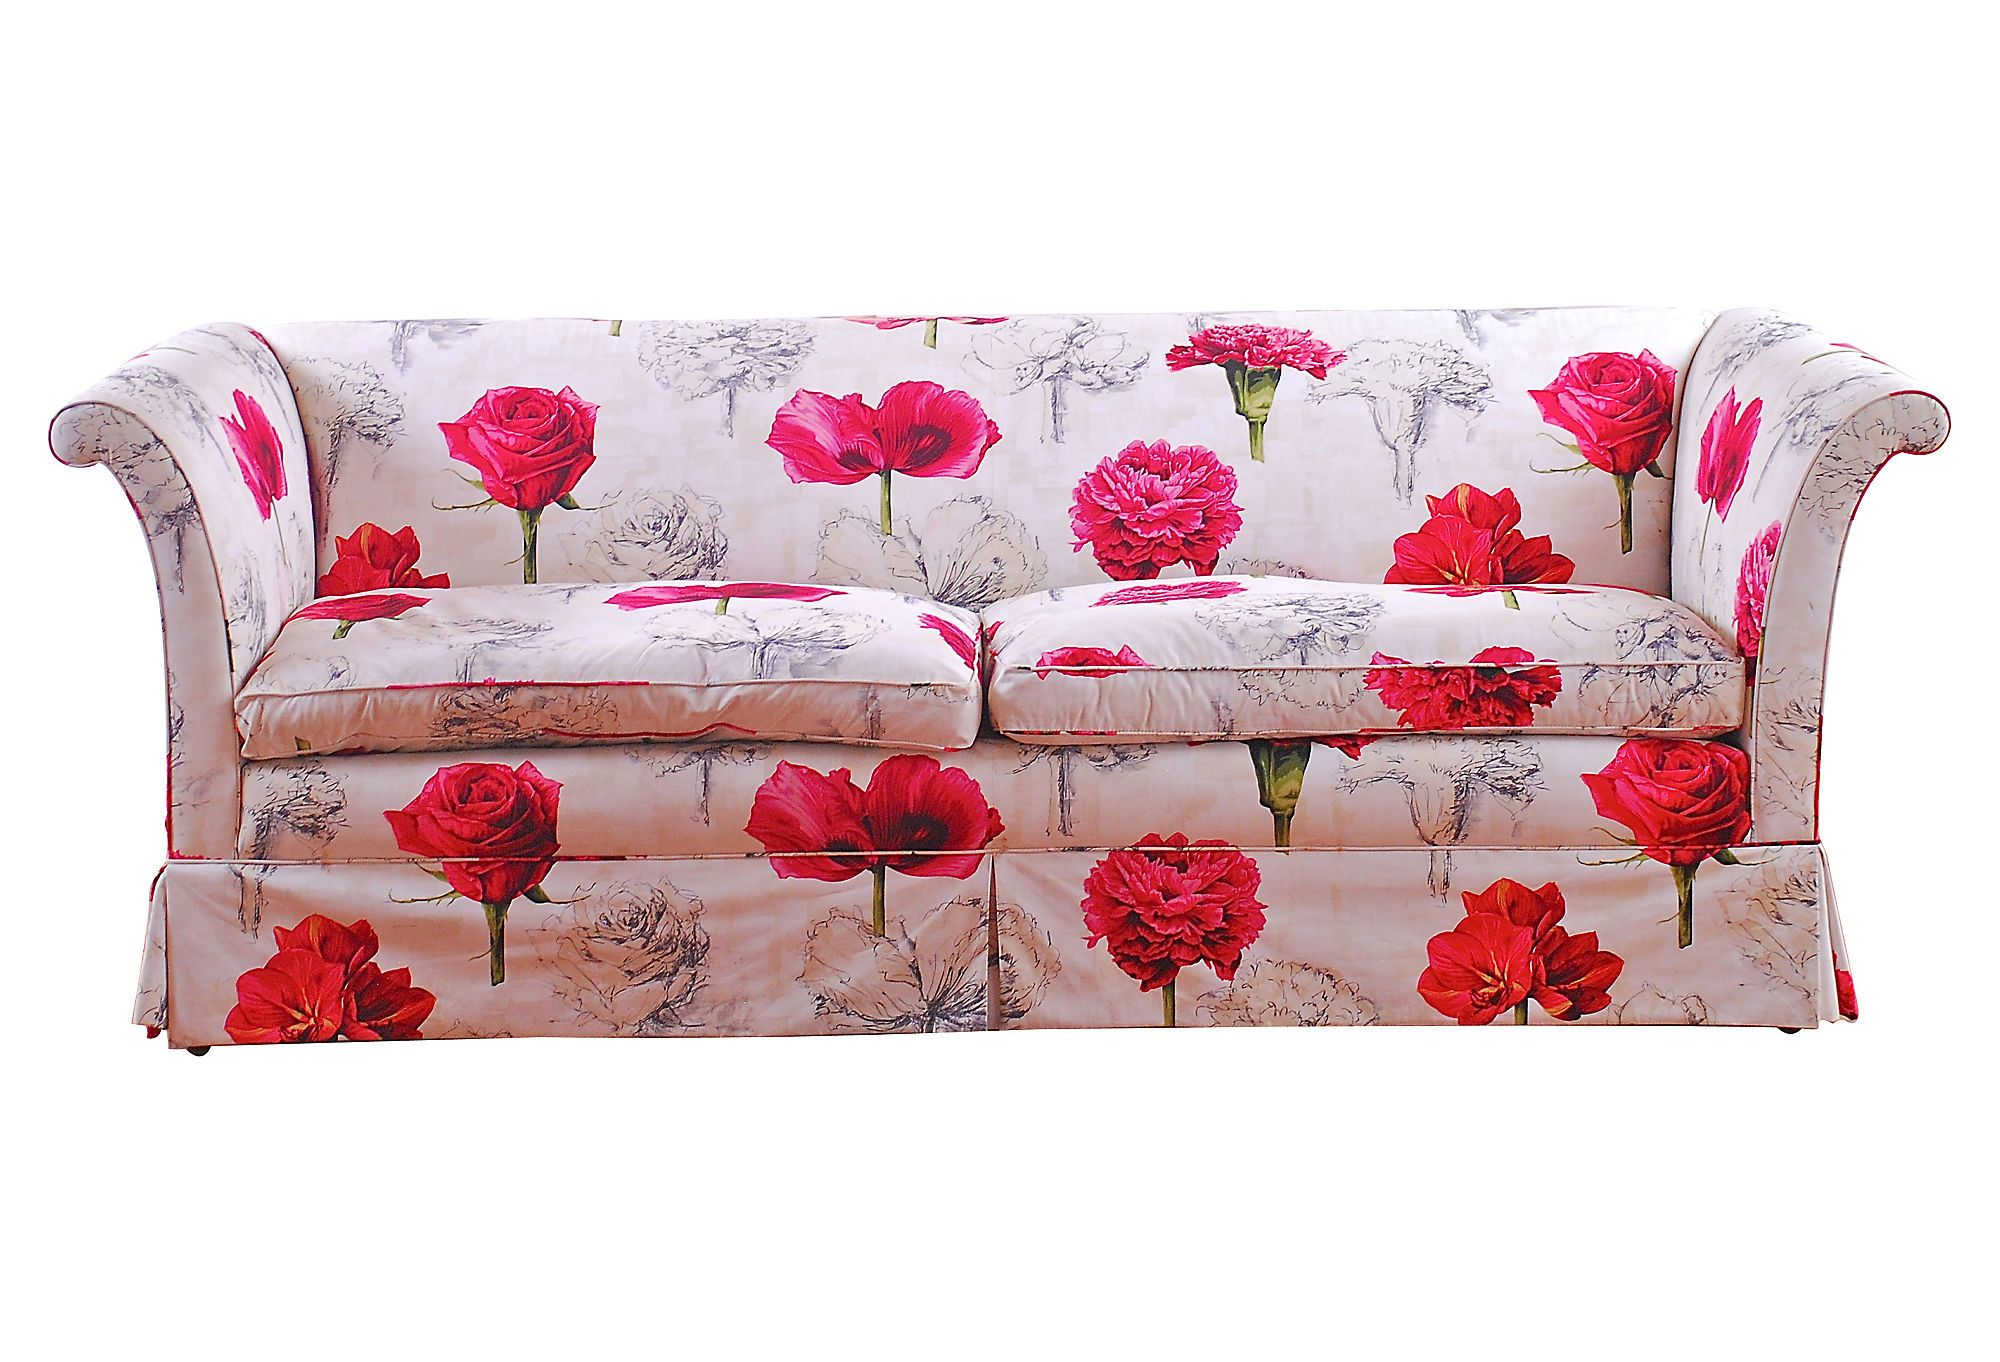 flower sofa covers repairs near me upholstered floral with bright pink flowers on a